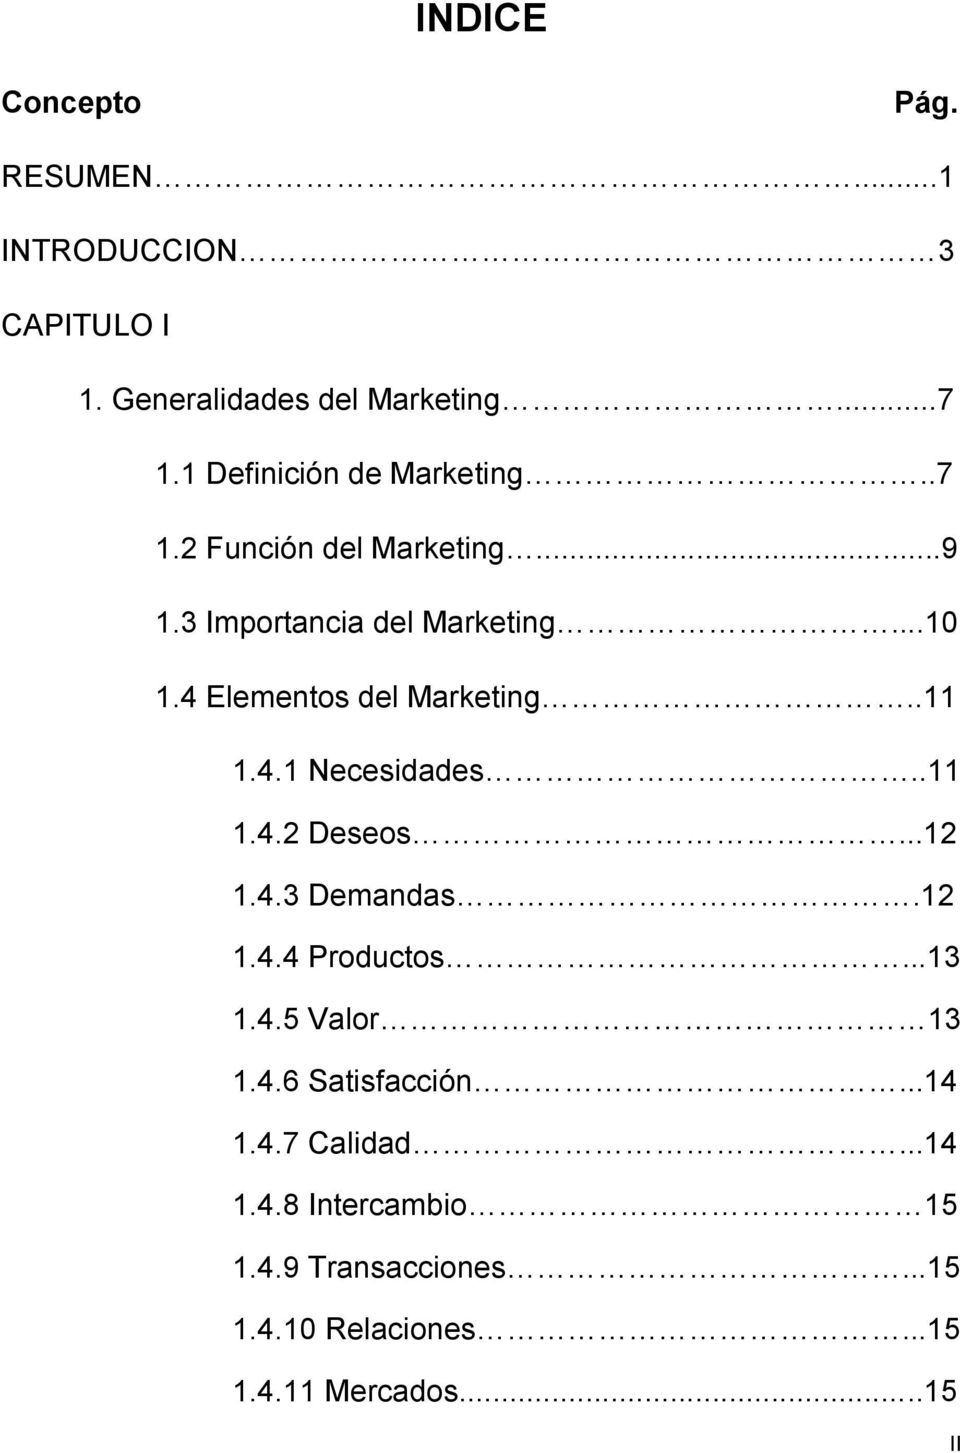 4 Elementos del Marketing..11 1.4.1 Necesidades..11 1.4.2 Deseos...12 1.4.3 Demandas.12 1.4.4 Productos...13 1.4.5 Valor 13 1.